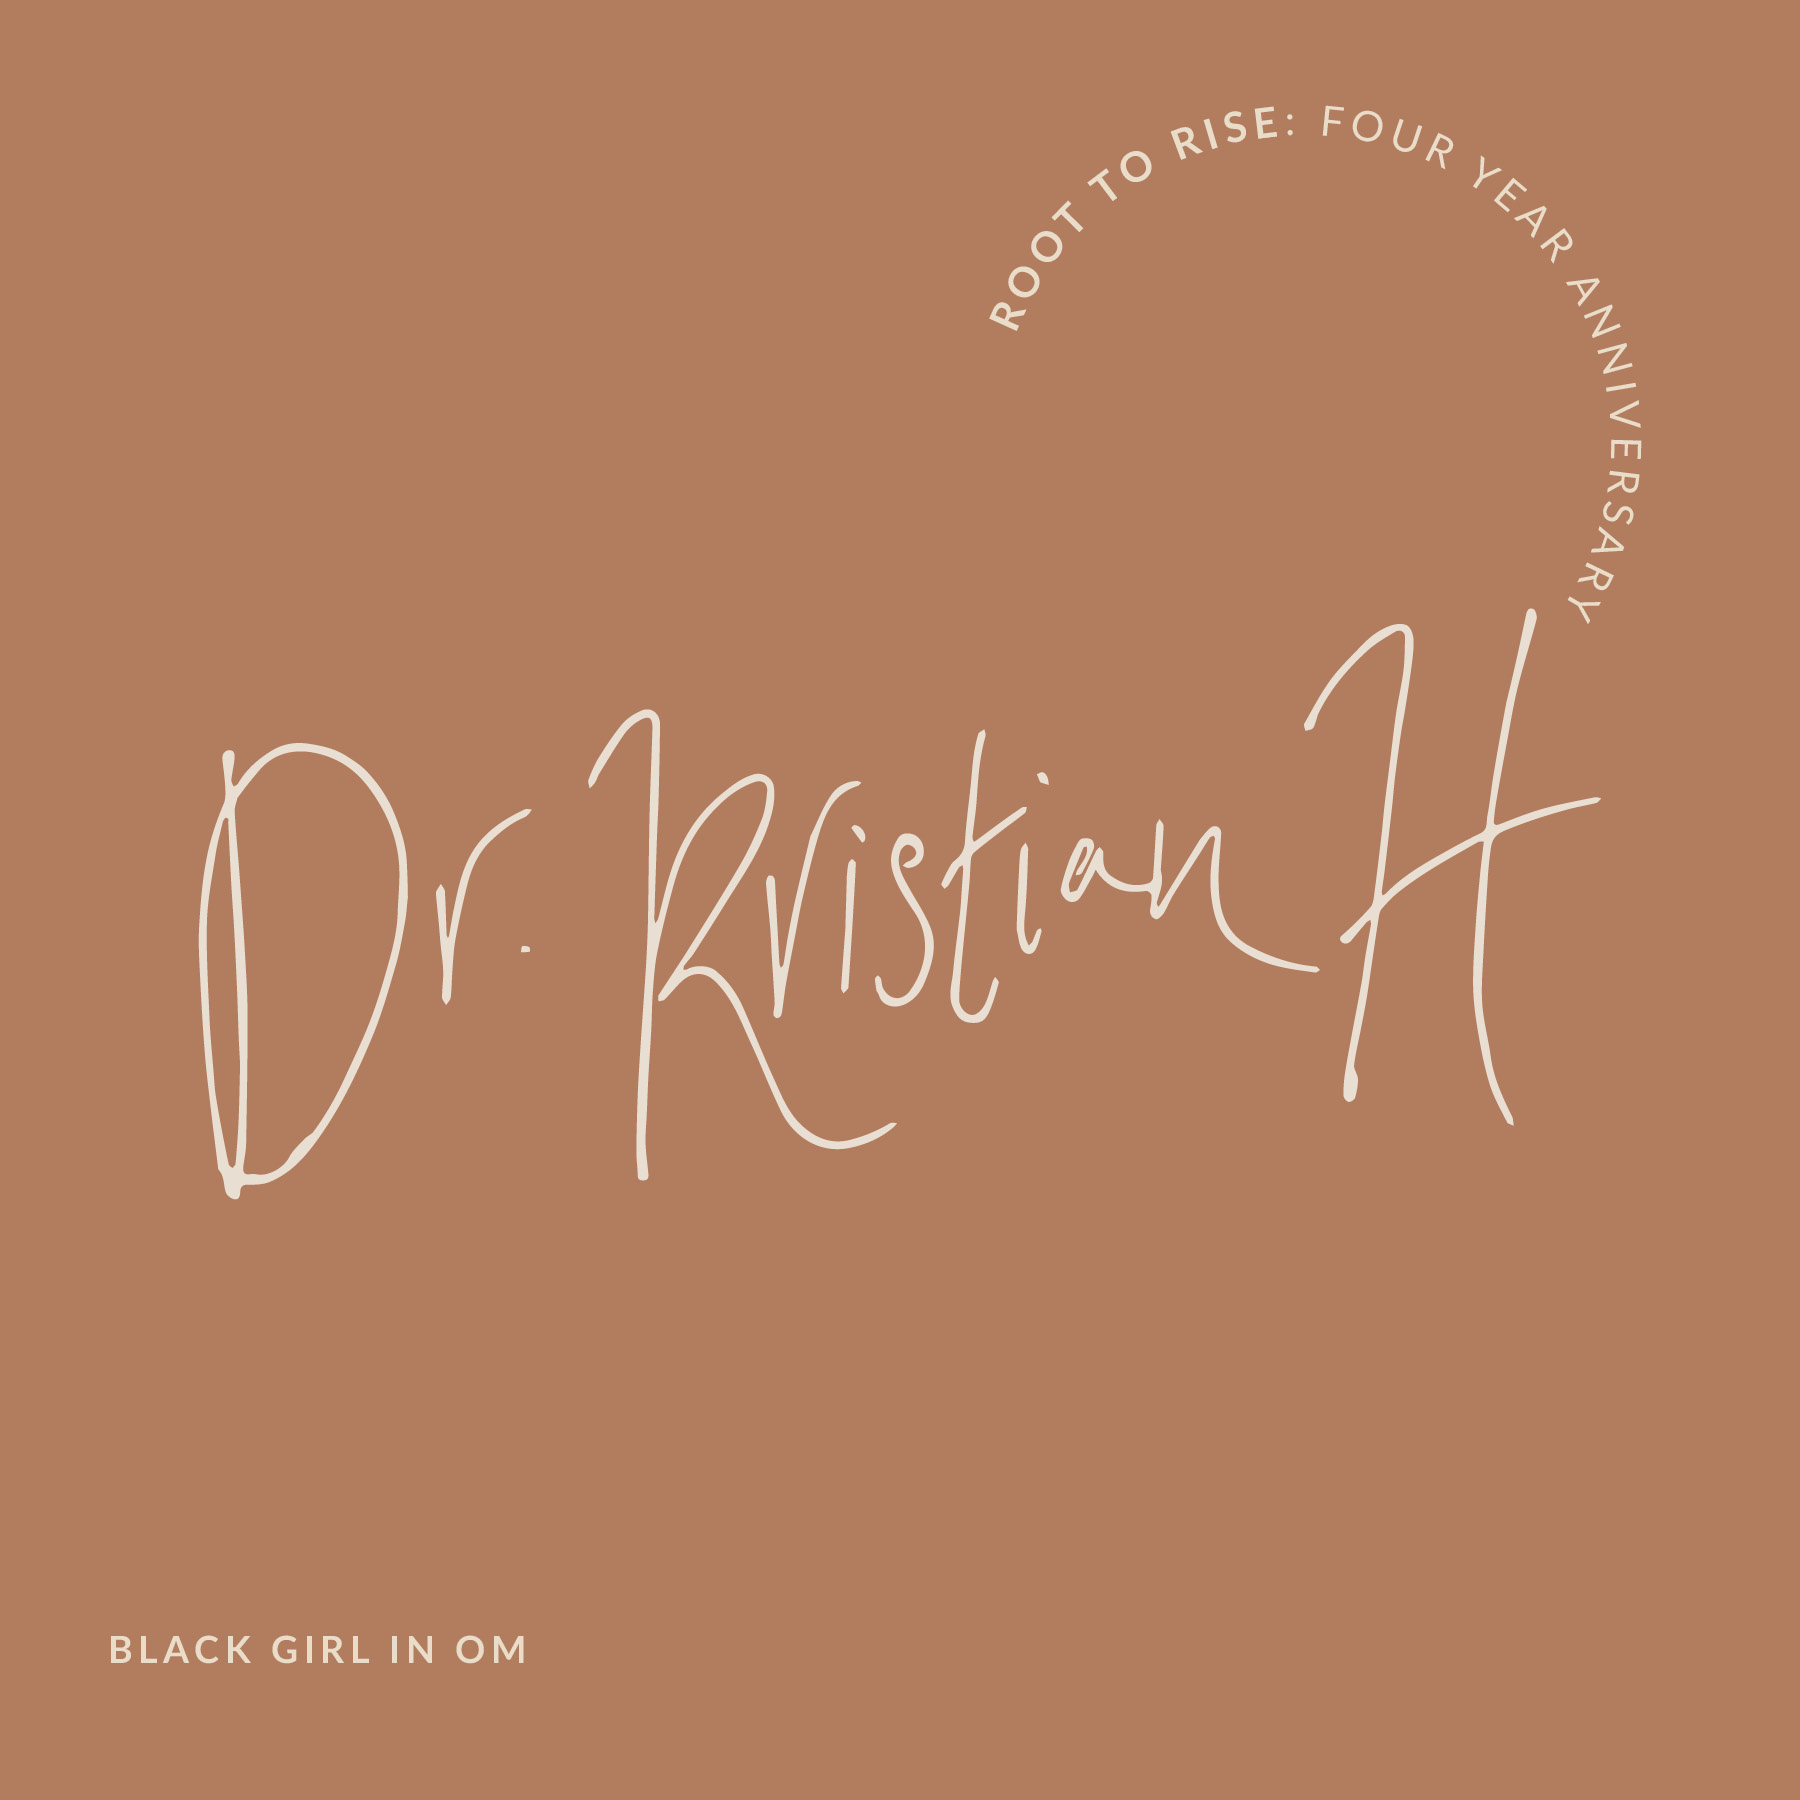 Dr Kristian H Root to Rise Name.jpg